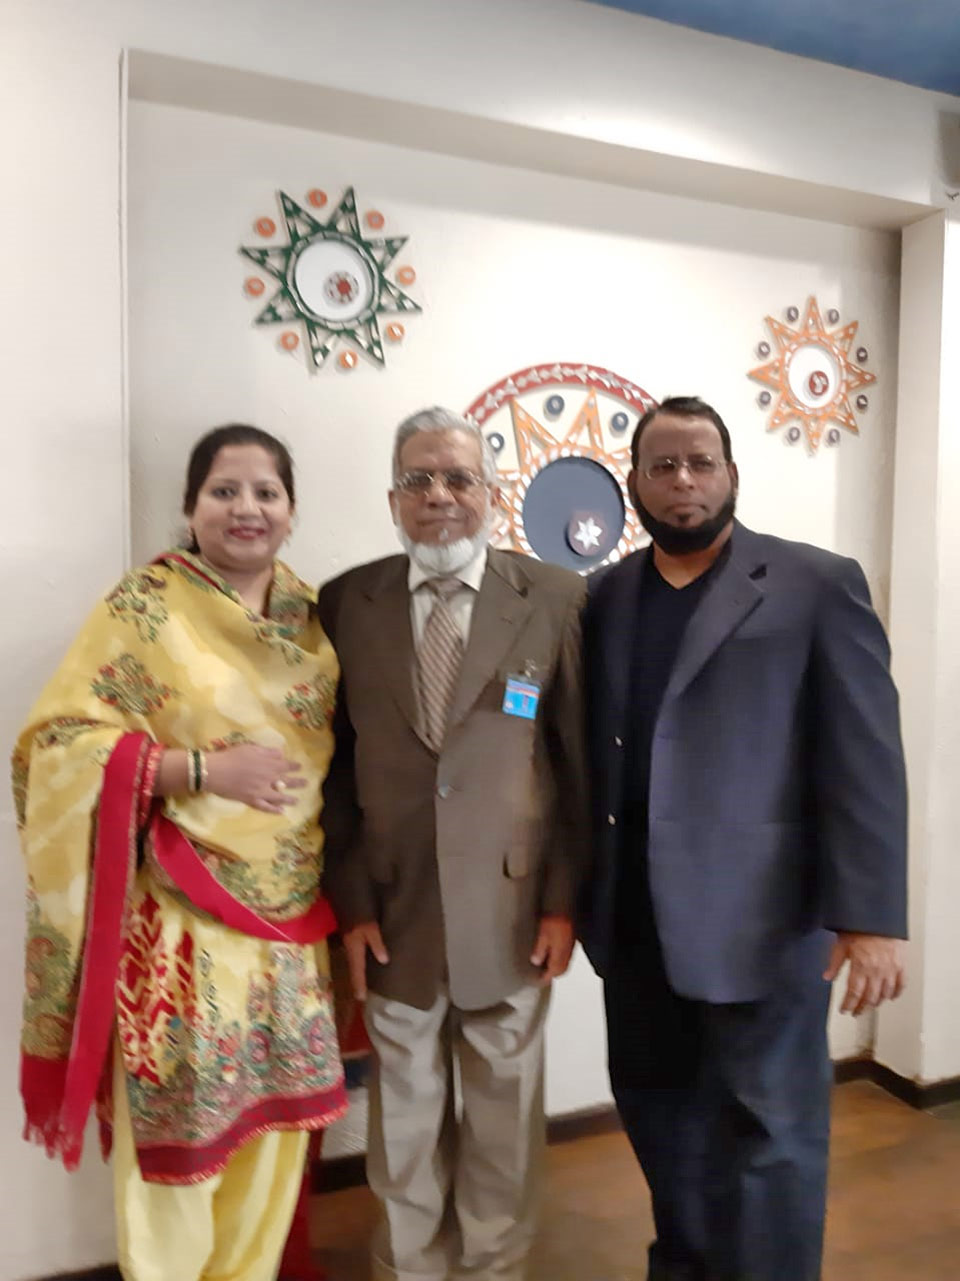 Engr. Iqbal A. Khan with his daughter Dr. Kiran A. Rehman and Son in law Dr. Ata Ur Rehman